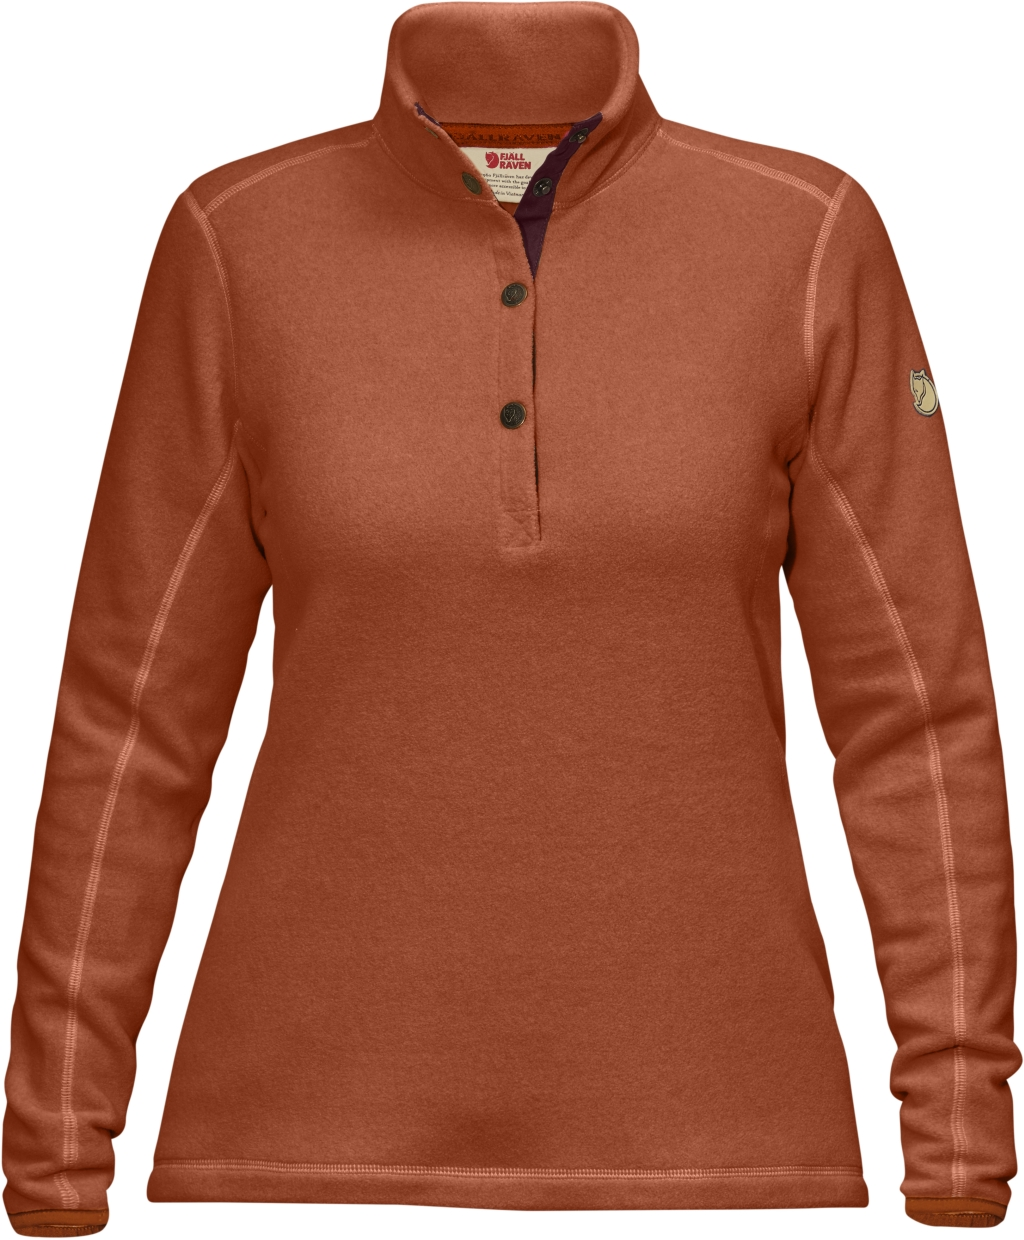 FjallRaven Ovik Fleece Sweater W Autumn Leaf-30